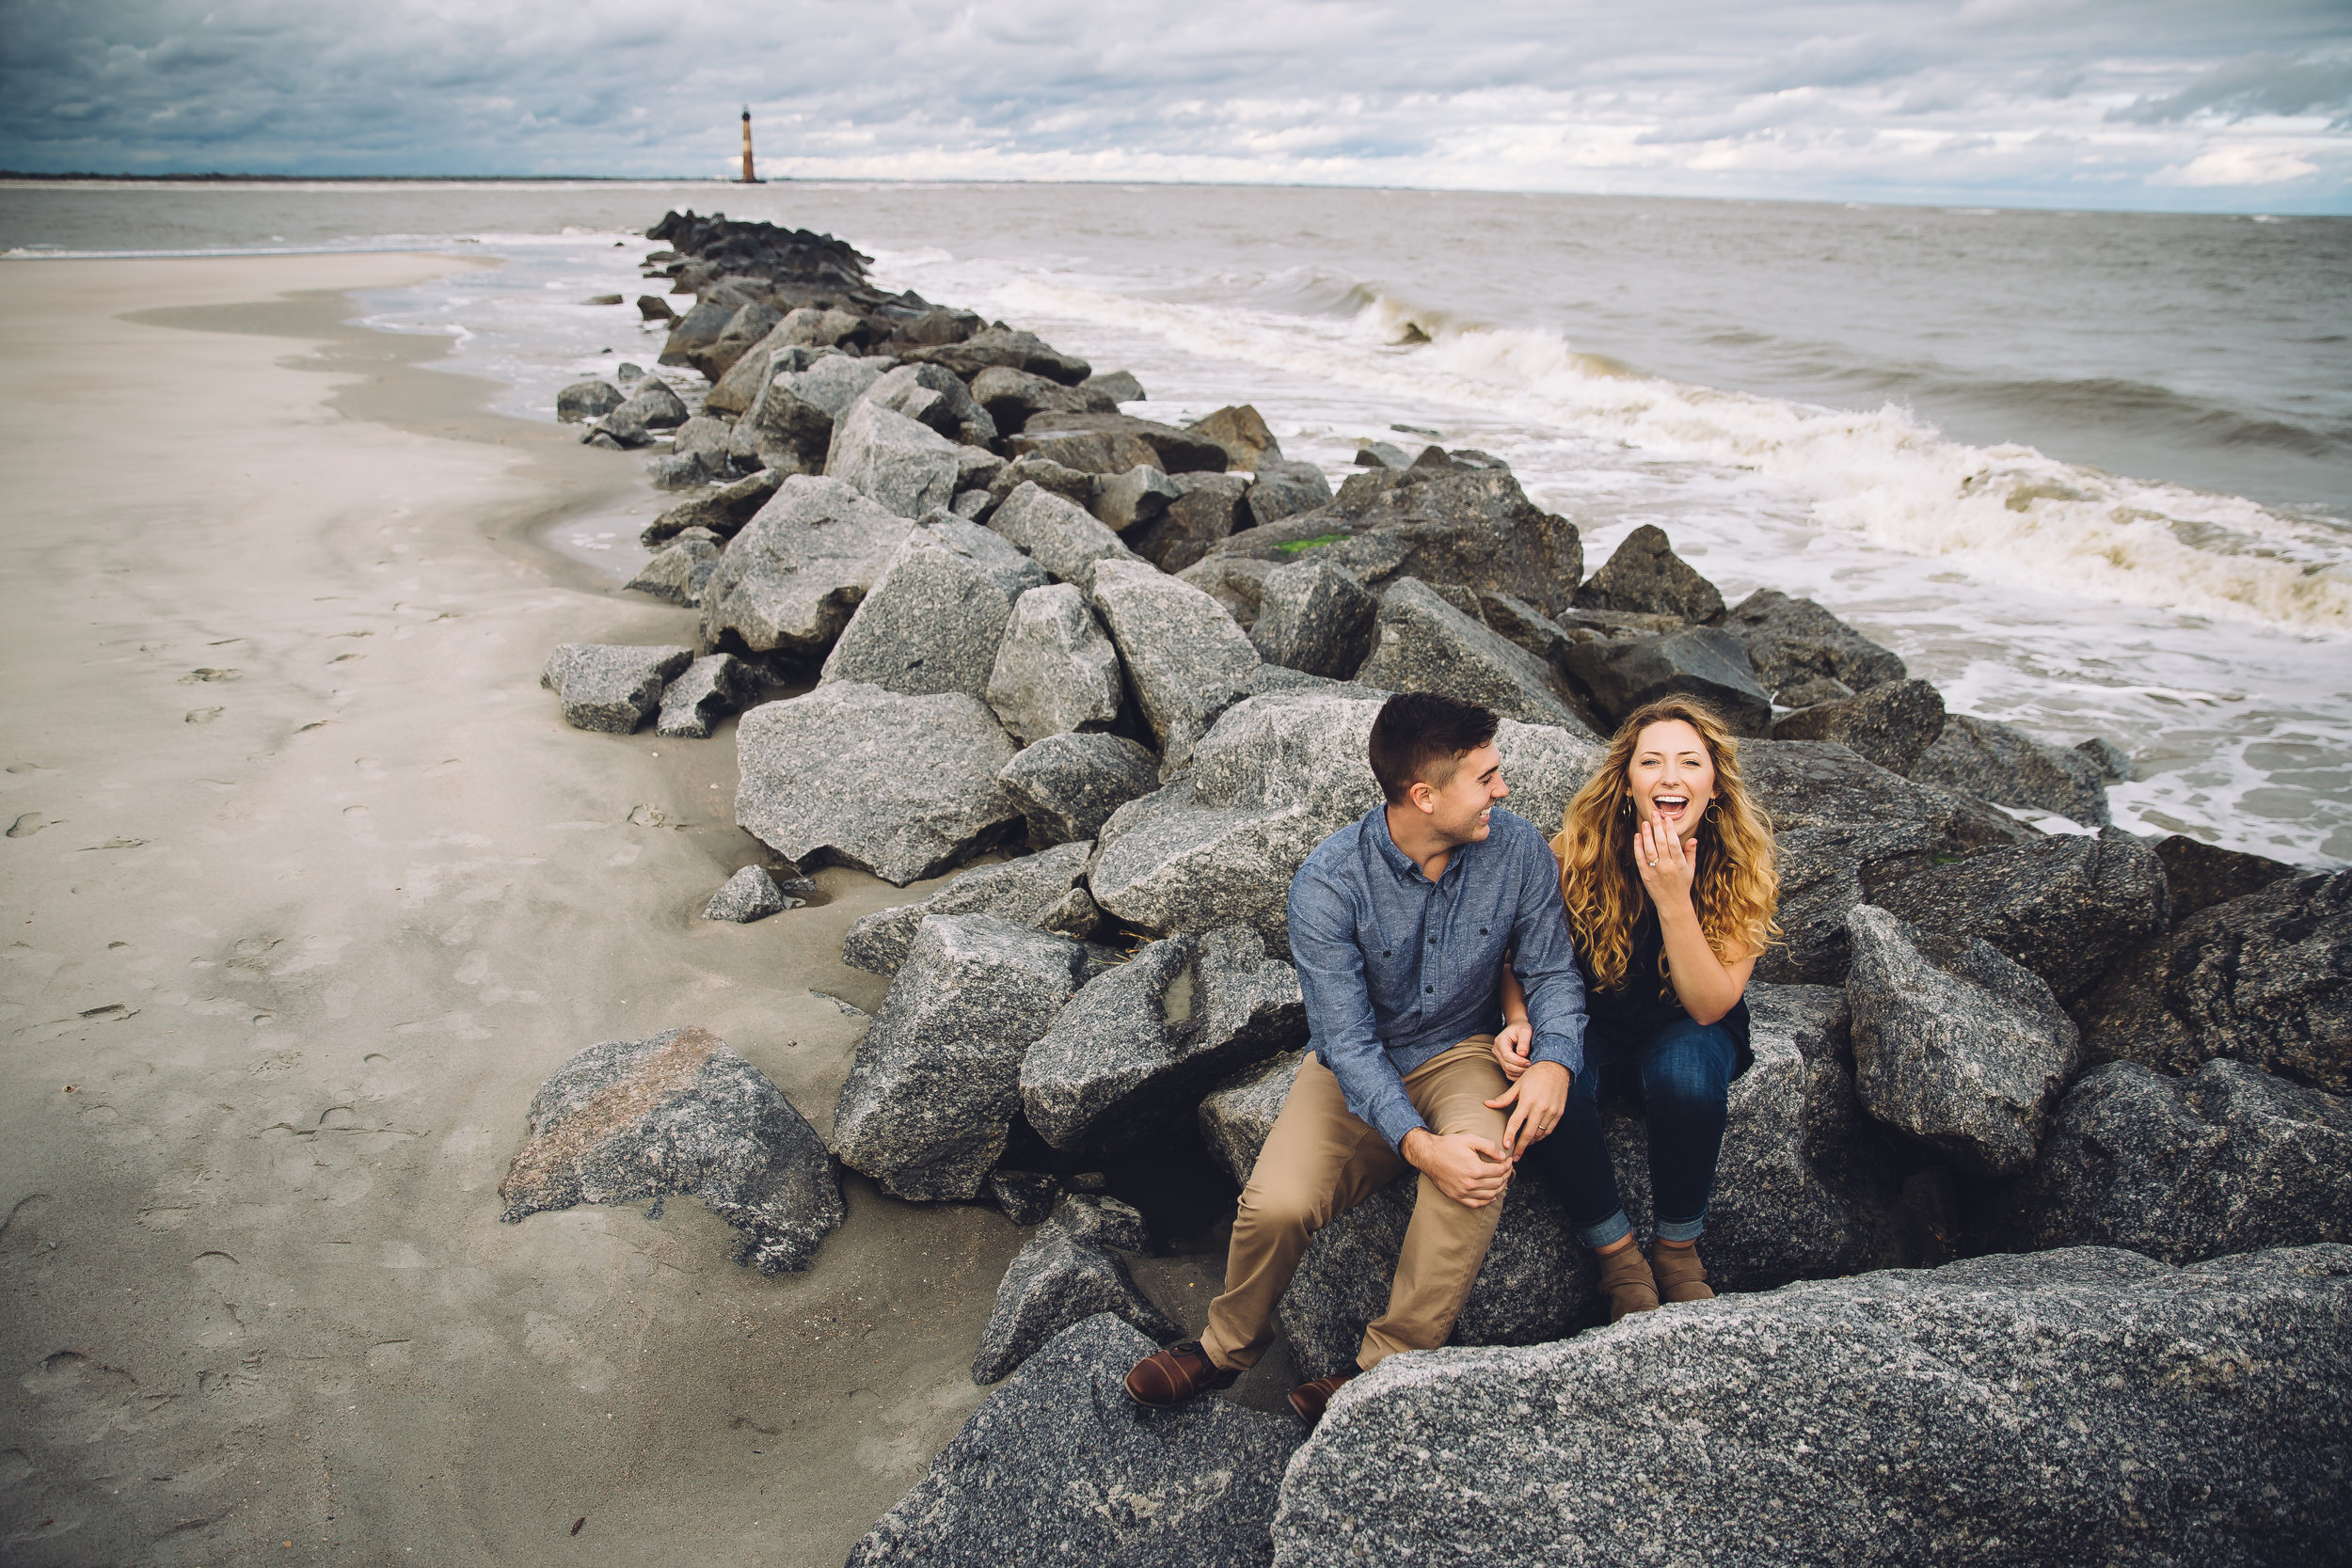 CHARLESTON WEDDING PHOTOGRAPHY, CHARLESTON WEDDING PHOTOGRAPHER, CHARLESTON ENGAGEMENT, ENGAGEMENT PHOTOGRAPHER, CHARLESTON, CHARLESTON WEDDING, BEST CHARLESTON WEDDING PHOTOGRAPHER, DESTINATION WEDDING PHOTOGRAPHY